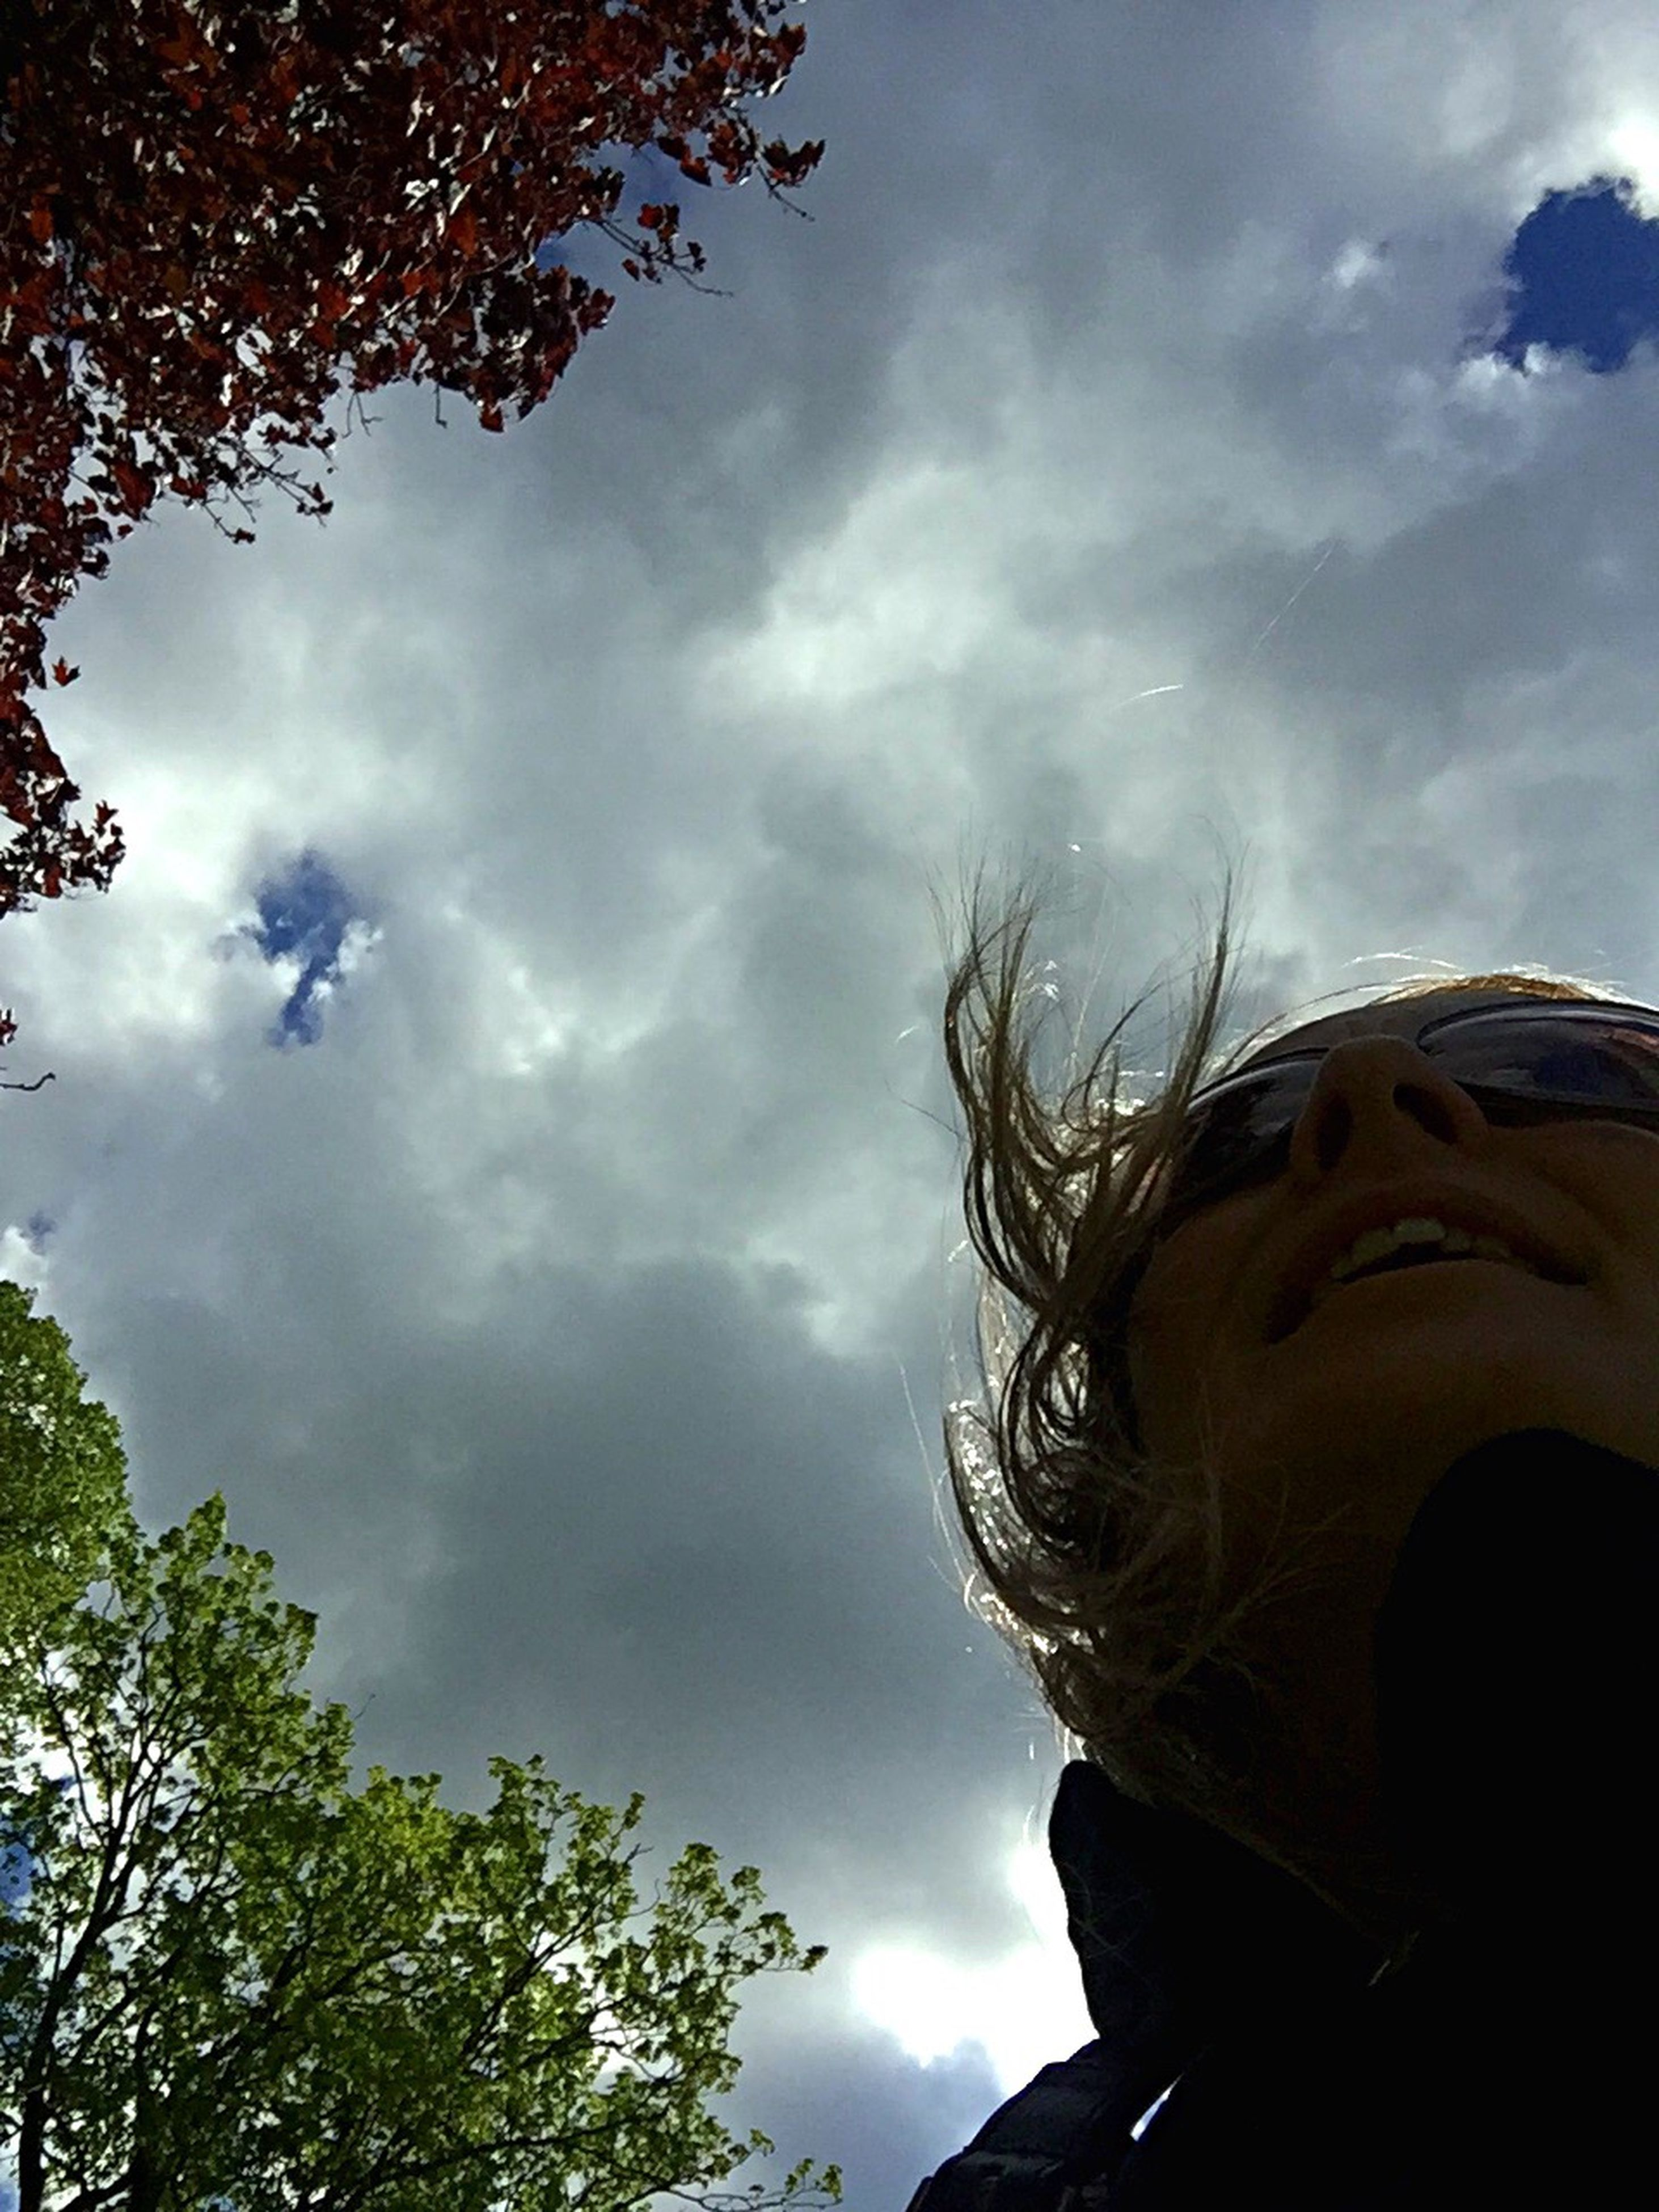 cloud - sky, sky, low angle view, day, tree, outdoors, childhood, nature, statue, no people, building exterior, beauty in nature